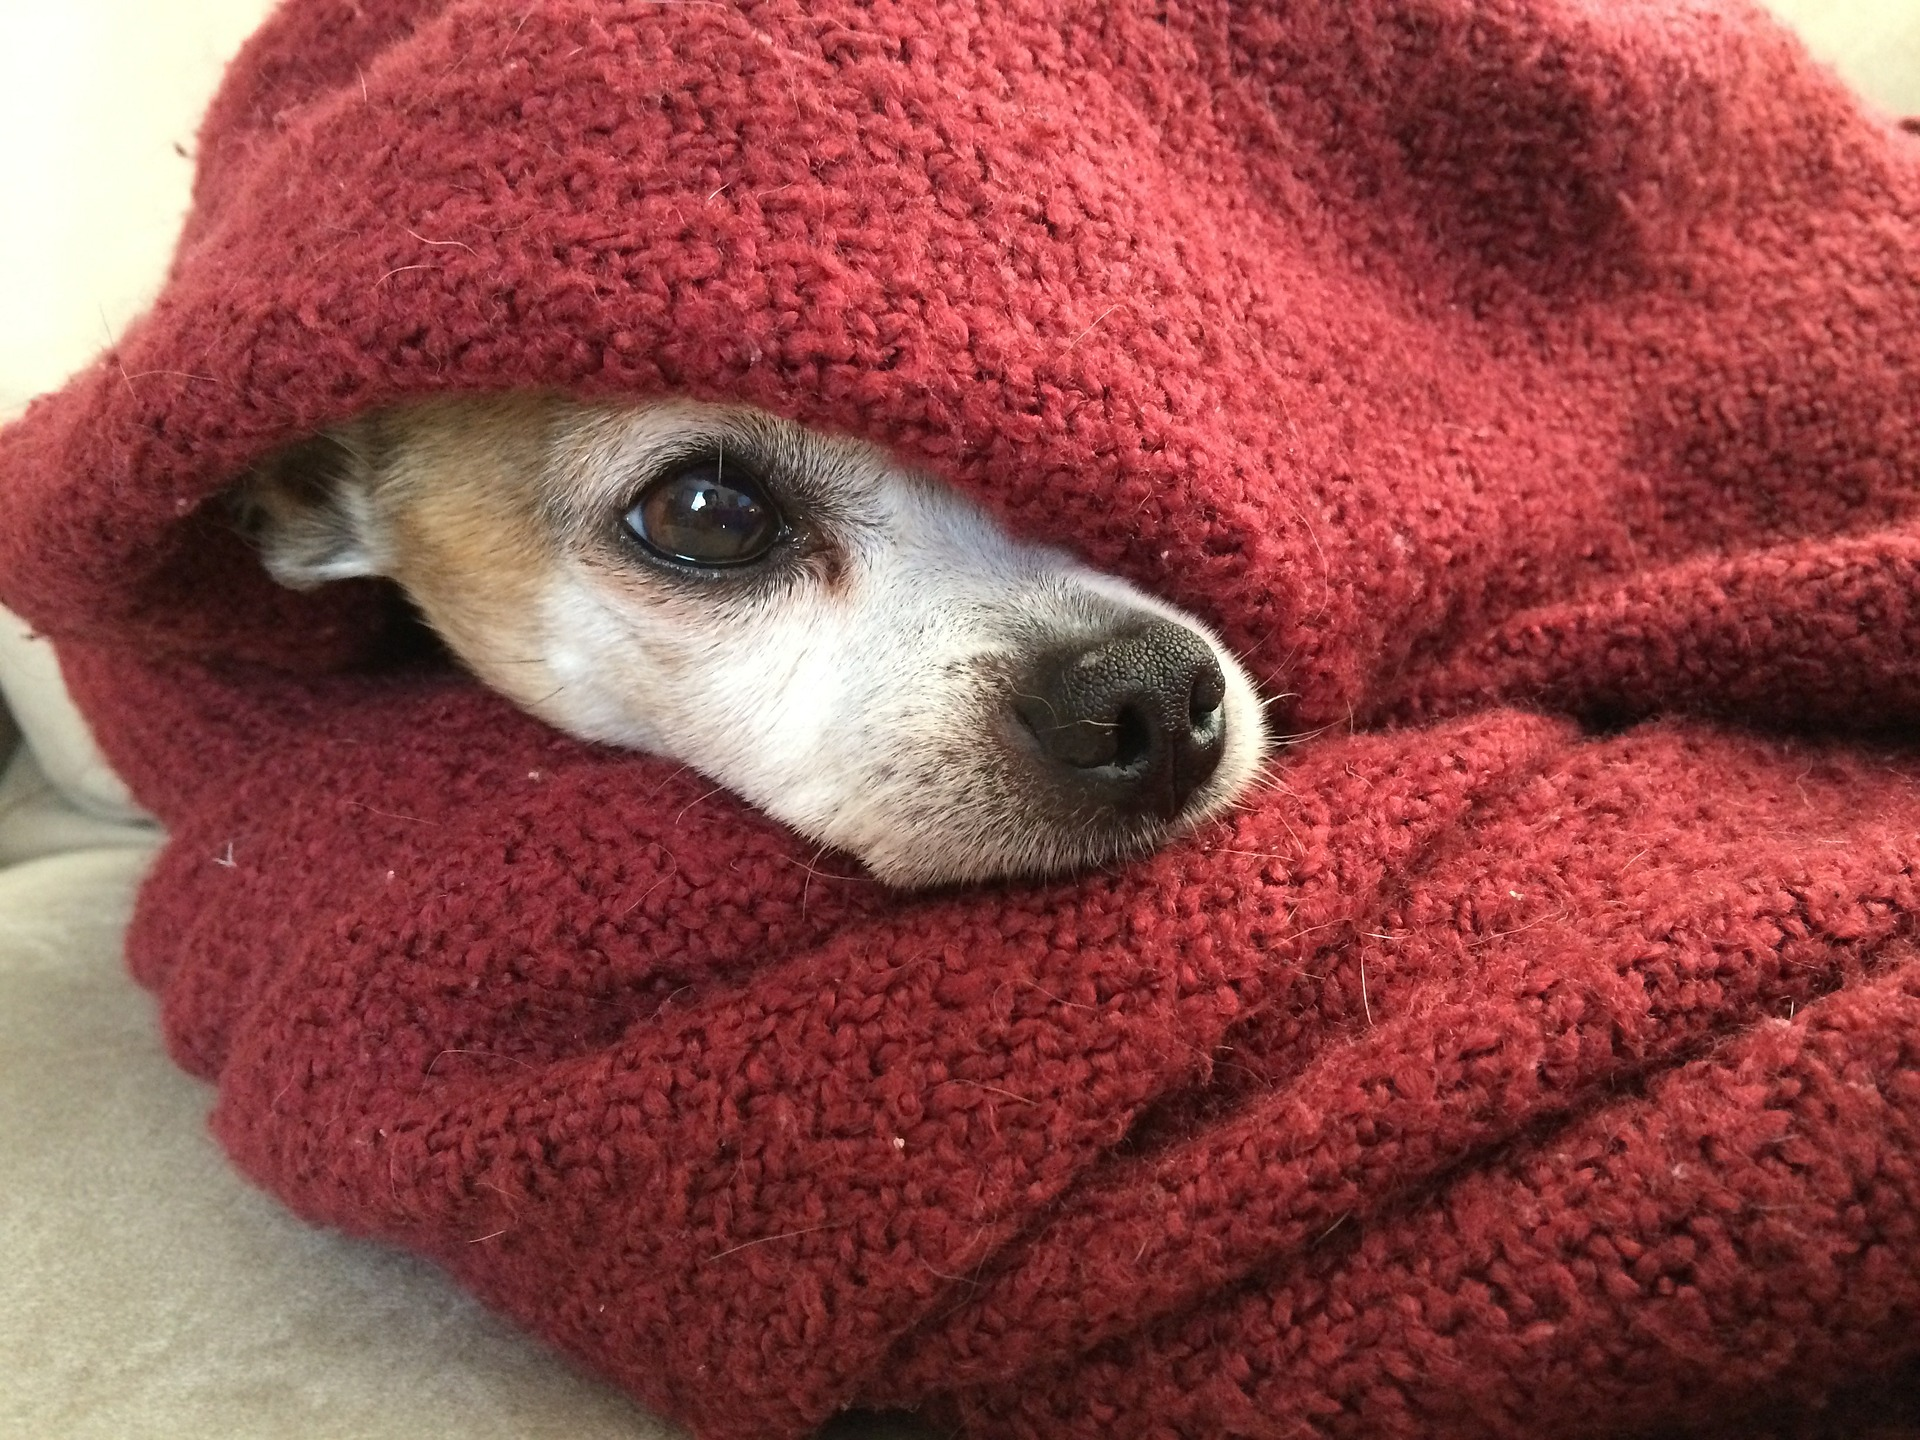 dog teeth chattering - chihuahua in blanket